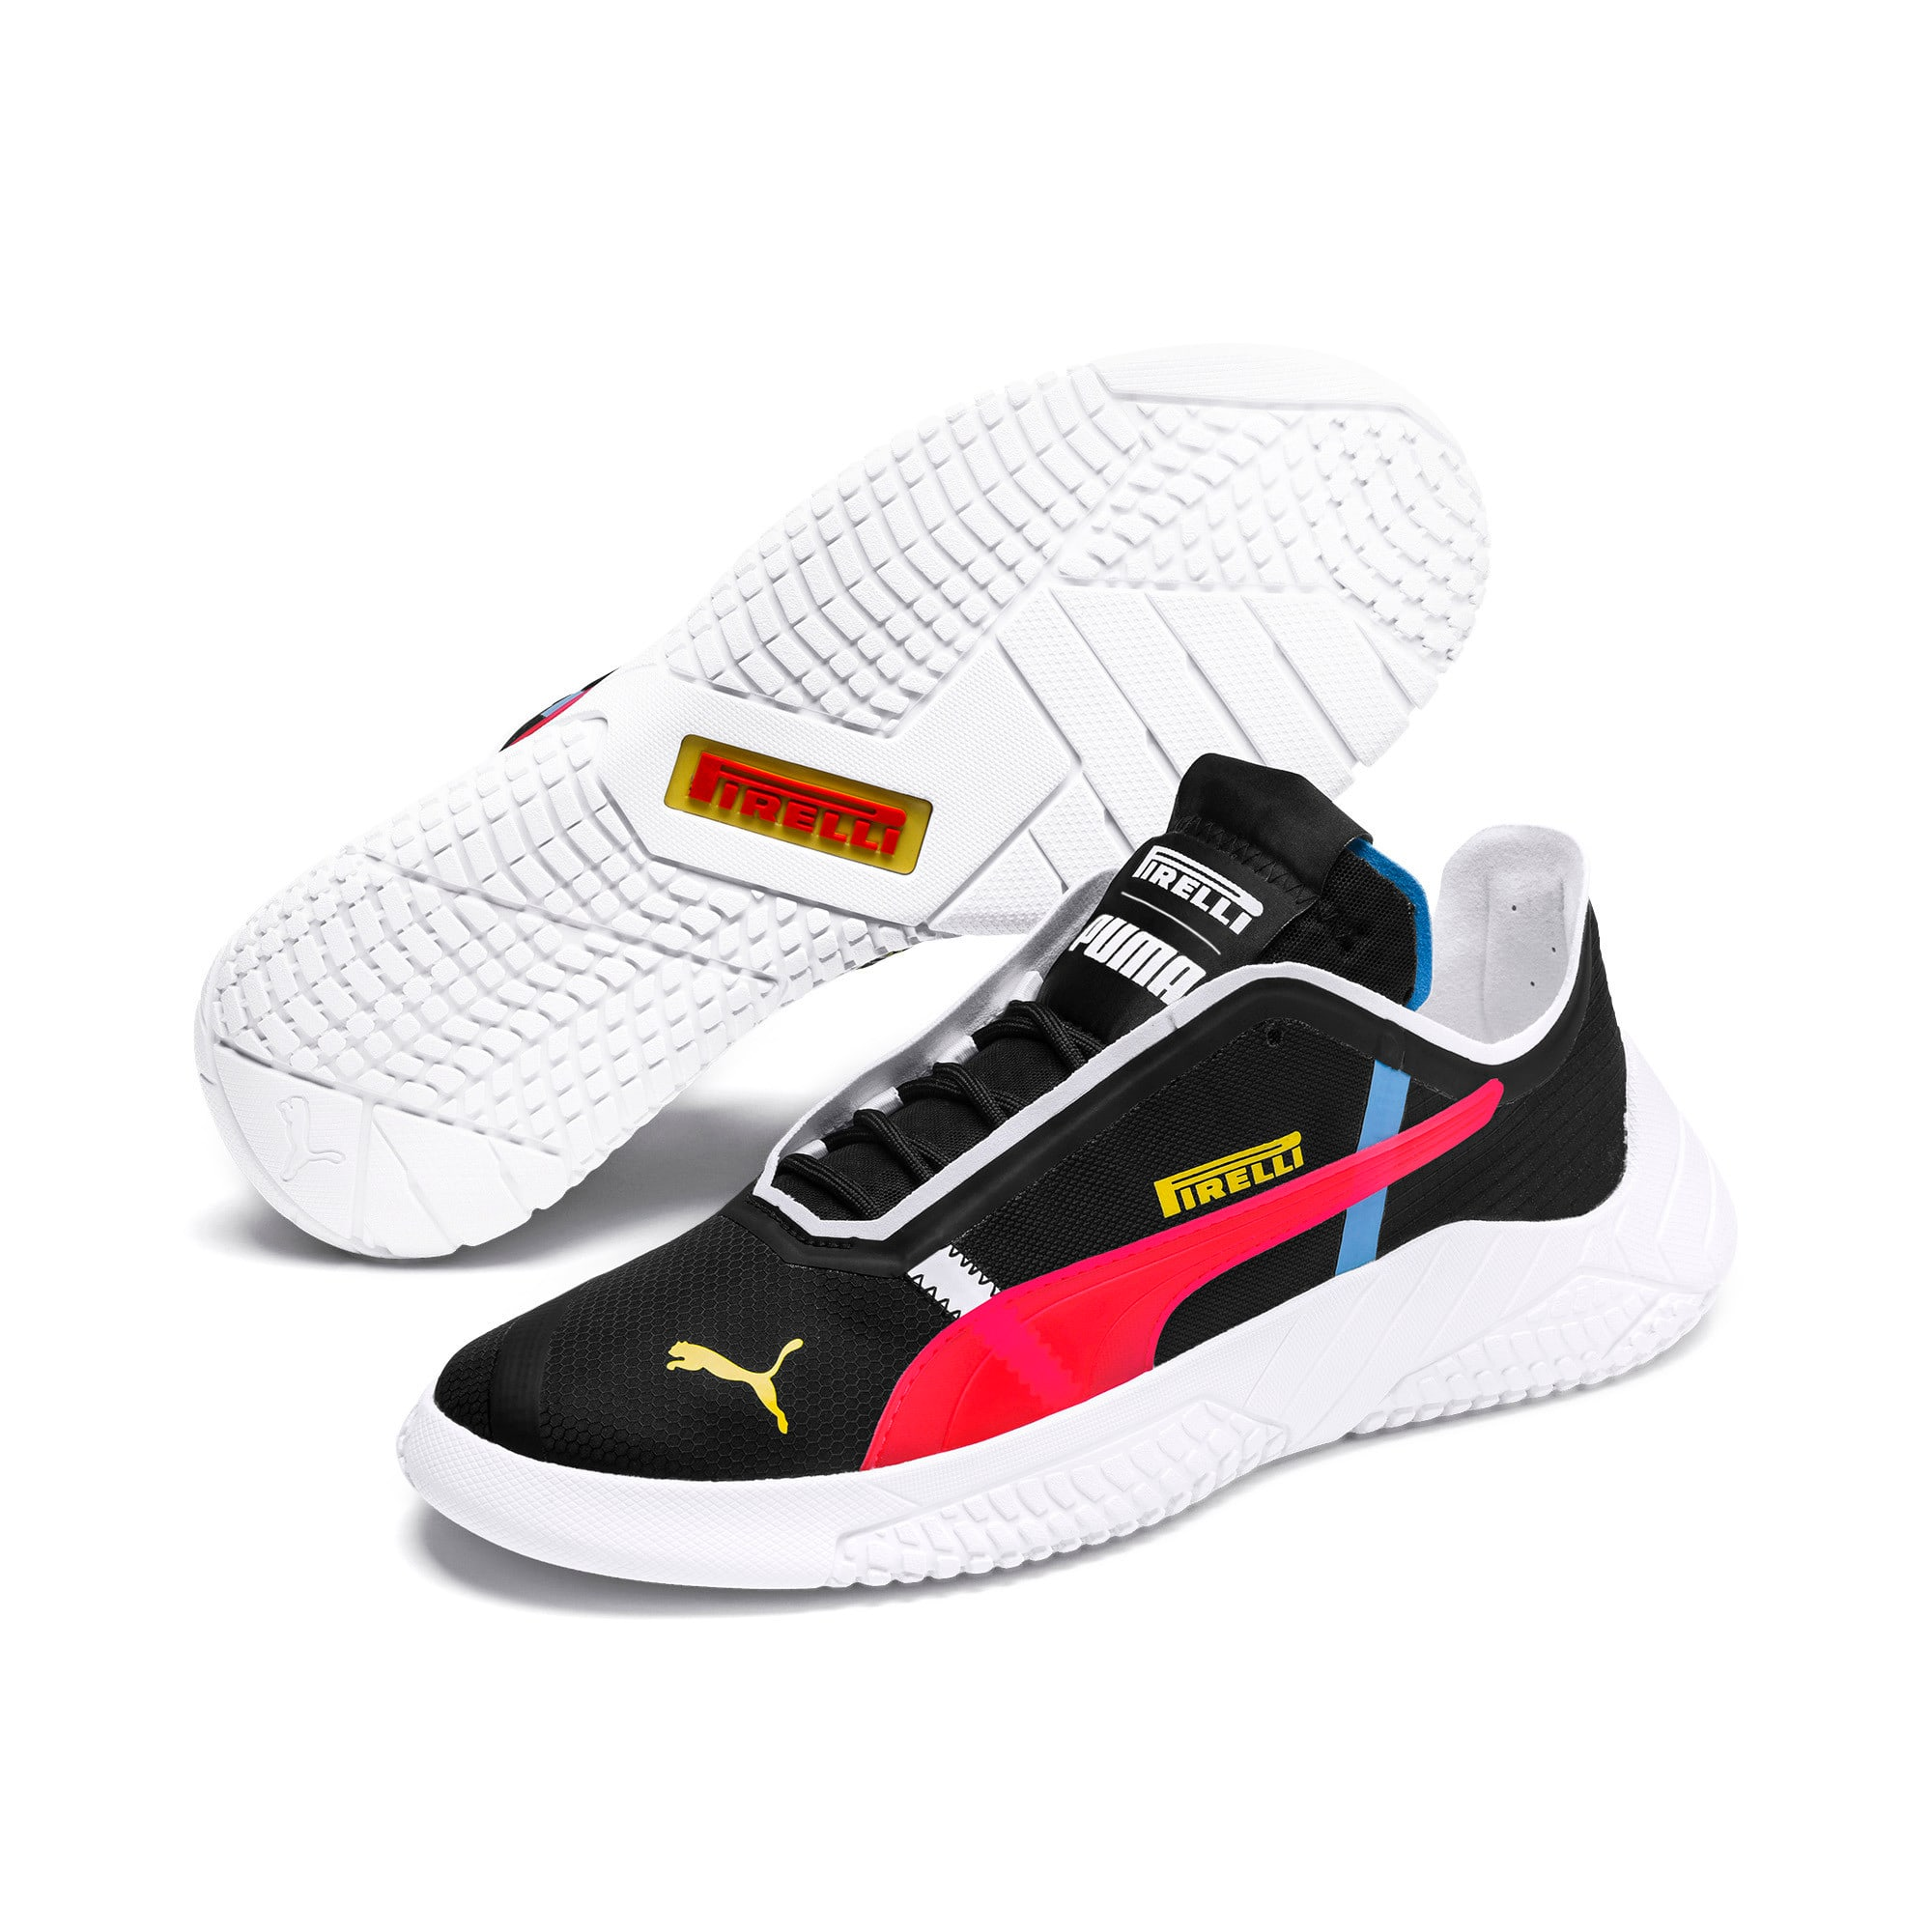 Thumbnail 3 of Pirelli Replicat-X Trainers, Black-Puma Red- White, medium